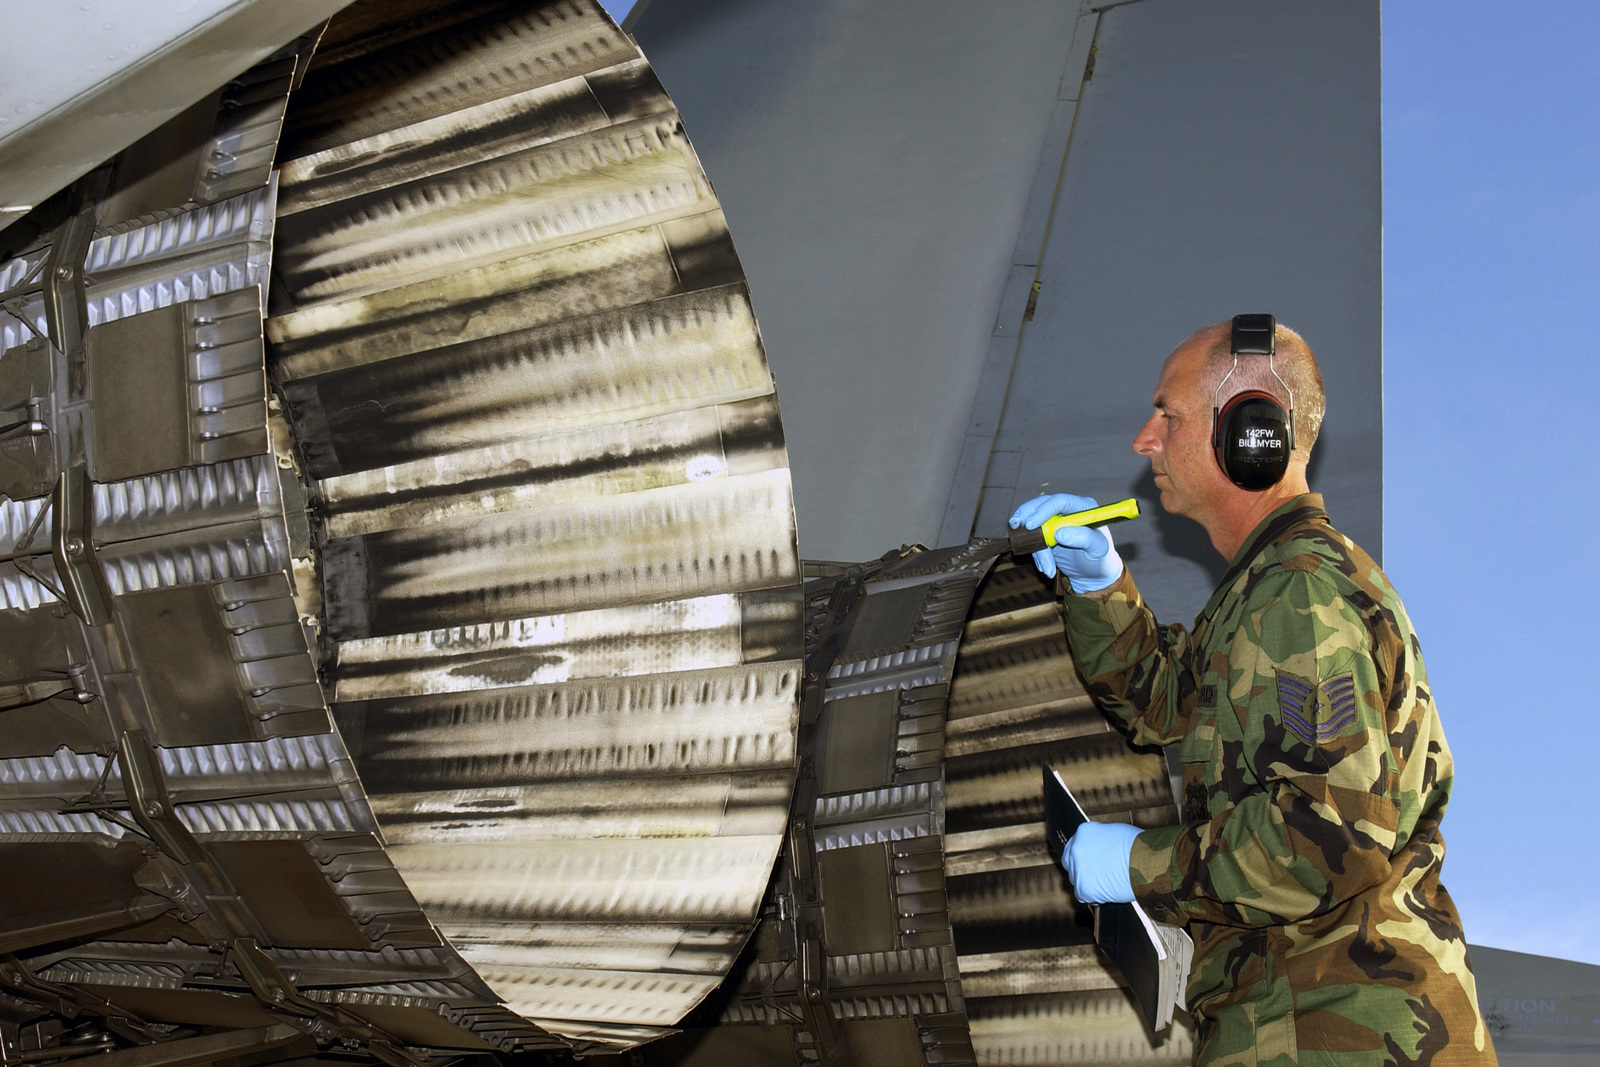 U.S. Air Force TECH. SGT. Mark Billmyer, from the 142nd Fighter Wing, Oregon Air National Guard, inspect the afterburner exhaust nozzles on an F-15 Eagle aircraft during exercise William Tell 2004 at Tyndall Air Force Base, Fla., on Nov. 9, 2004. This is the 50th Anniversary of the William Tell competition, an exercise that tests an aircrew's ability to perform under combat conditions. (USAF PHOTO by STAFF SGT. Dennis J. Henry Jr.) (Released)